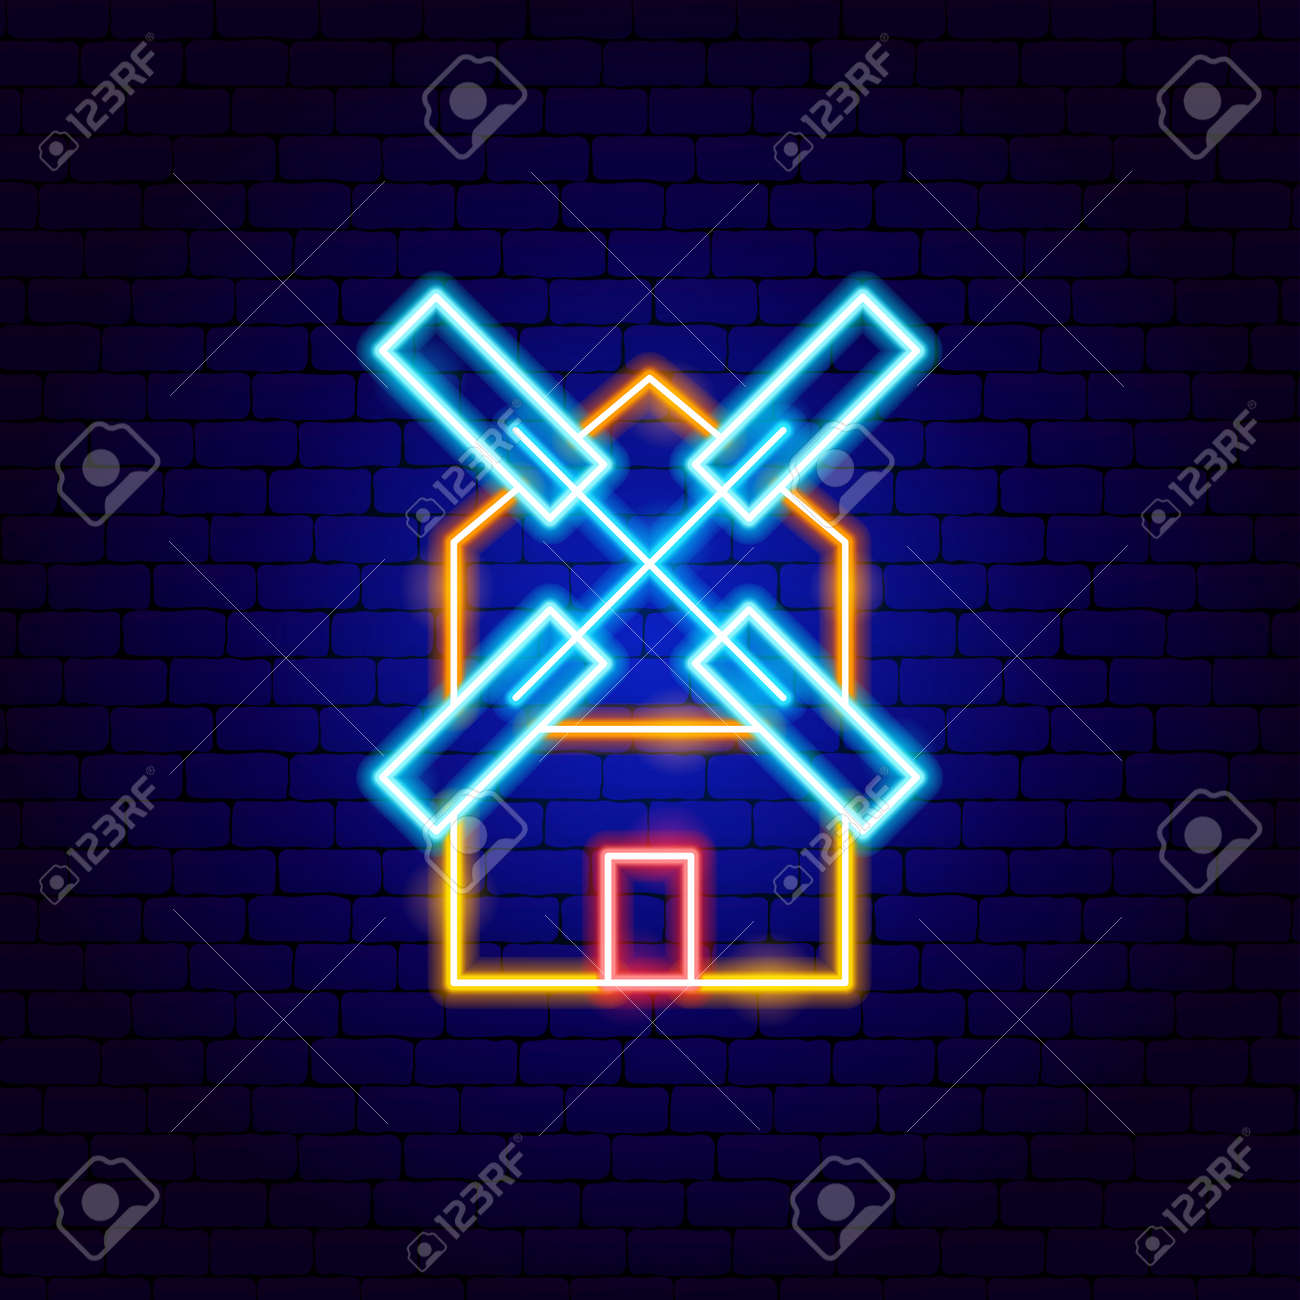 Mill Neon Sign - 169264476